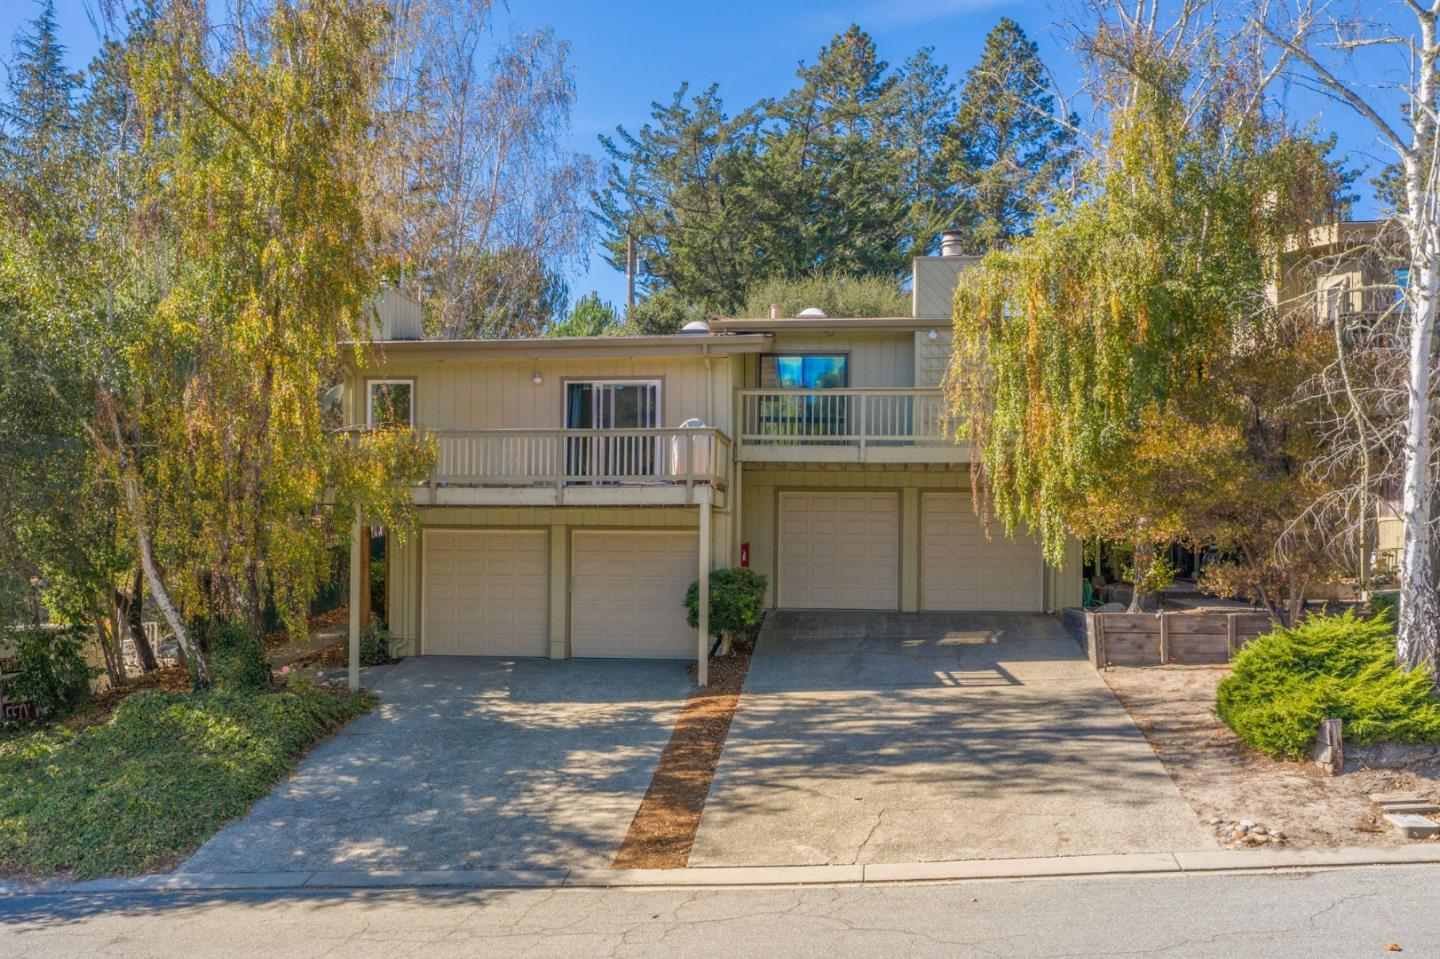 Contemporary 2BR/2BA townhouse located on a highly desired, tree-lined cul-de-sac in Scotts Valley. This lofty two-story home elegantly displays vaulted ceilings, skylights, and a wood burning fireplace. The open concept kitchen is designed for convenience with lots of counter space, dishwasher, and oven/range combo. There are 2 good sized bedrooms and 2 beautifully updated bathrooms. The master suite features sliding doors out to the backyard. The attached garage has space for two large vehicles as well as two parking spaces in the driveway. Whether you want to enjoy the sun set behind the mountains on your deck, BBQ in the private backyard, or walk over to the neighborhood park, this home gives the owners a variety of outdoor entertainment options. Close to Kings Village shopping center with restaurants, movie theaters, grocery store, plus great schools nearby. Short drive to beach, hiking, and quick & easy freeway access.